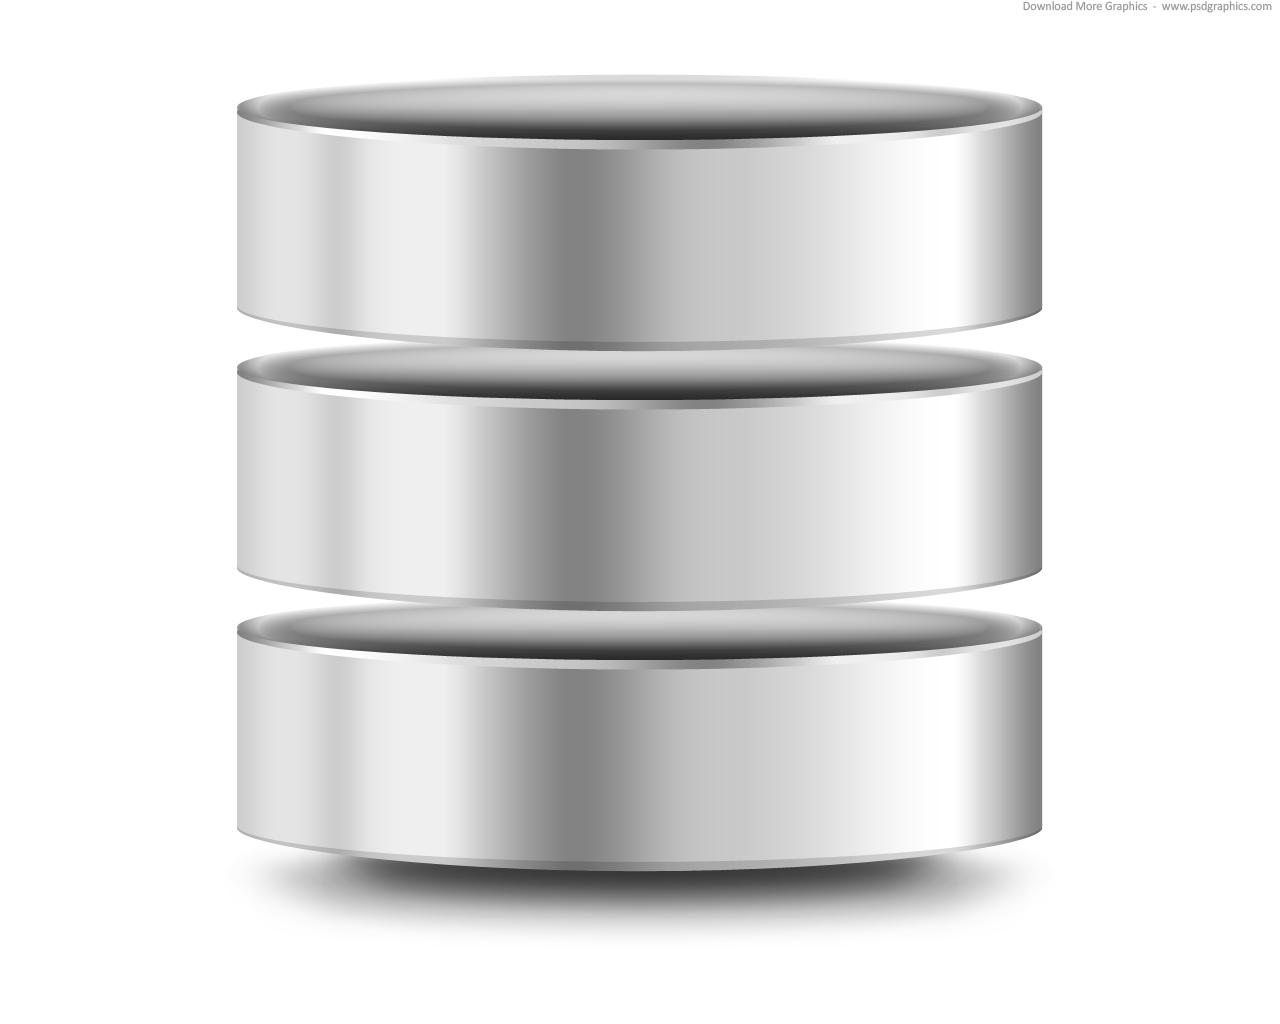 Silver computer database icon (PSD) | PSDGraphics